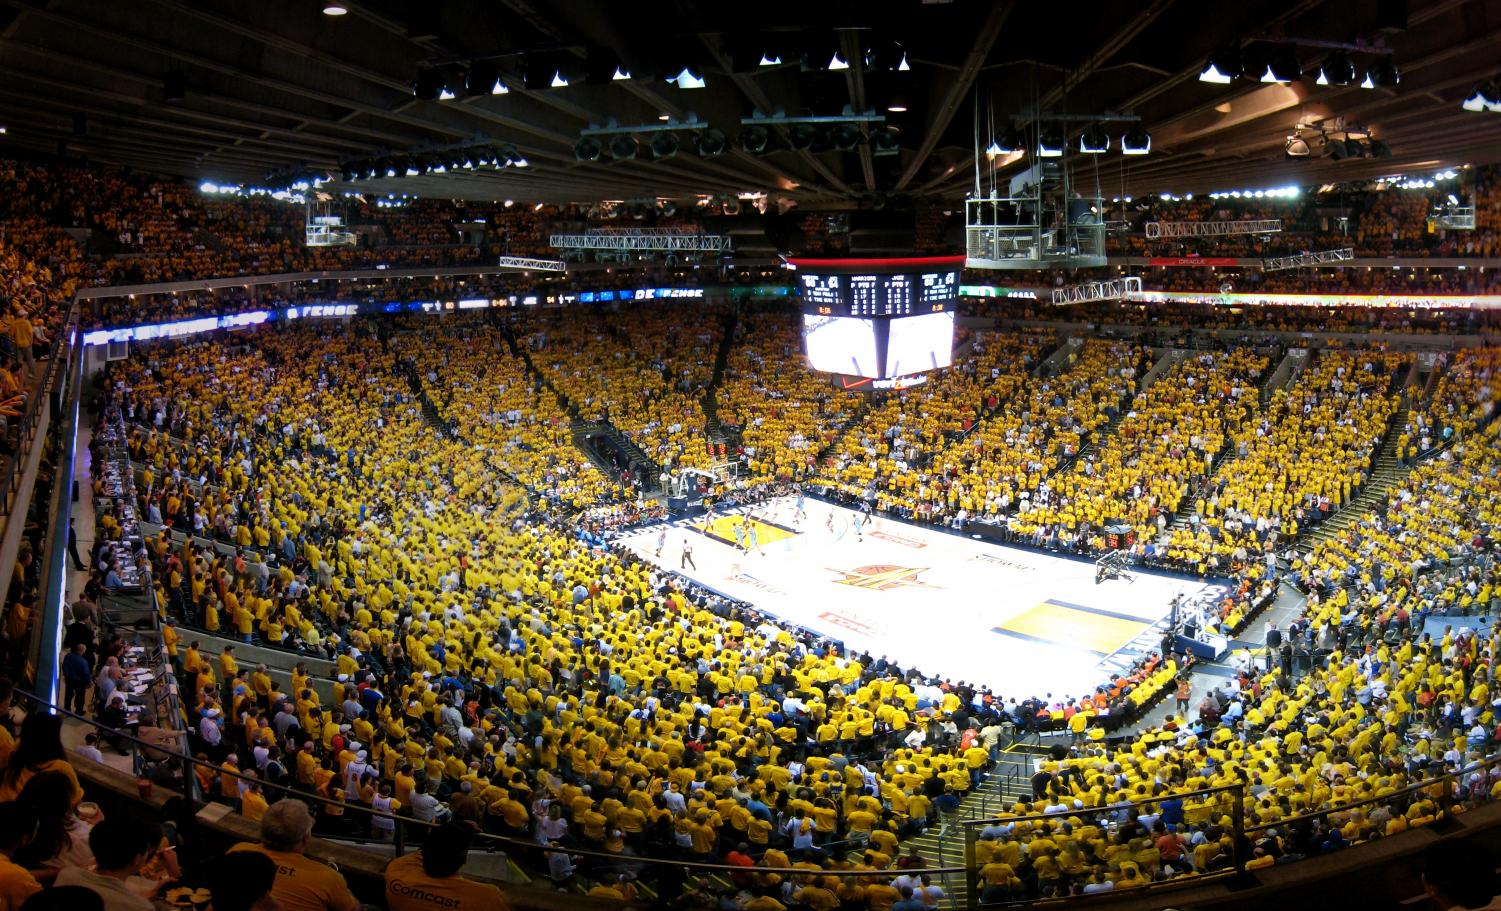 Hyping up the players as they enter the court, the sold out Oracle Arena can't wait for the last regular season game.